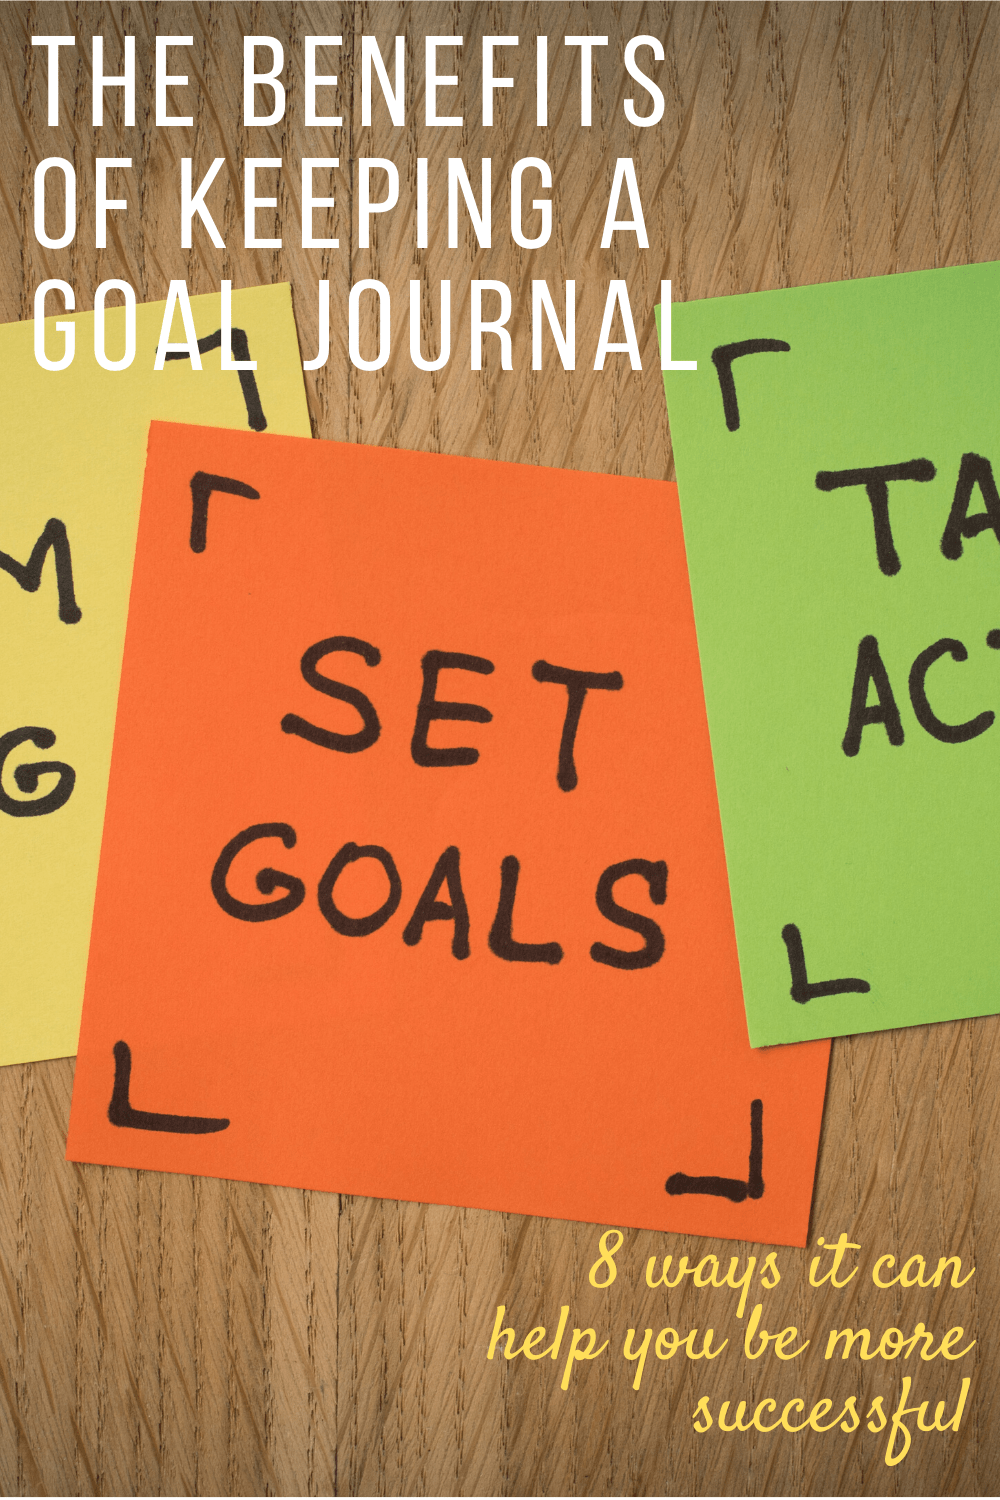 Find out why you need a goal journal in your life if you want to hustle and get that goal achieved